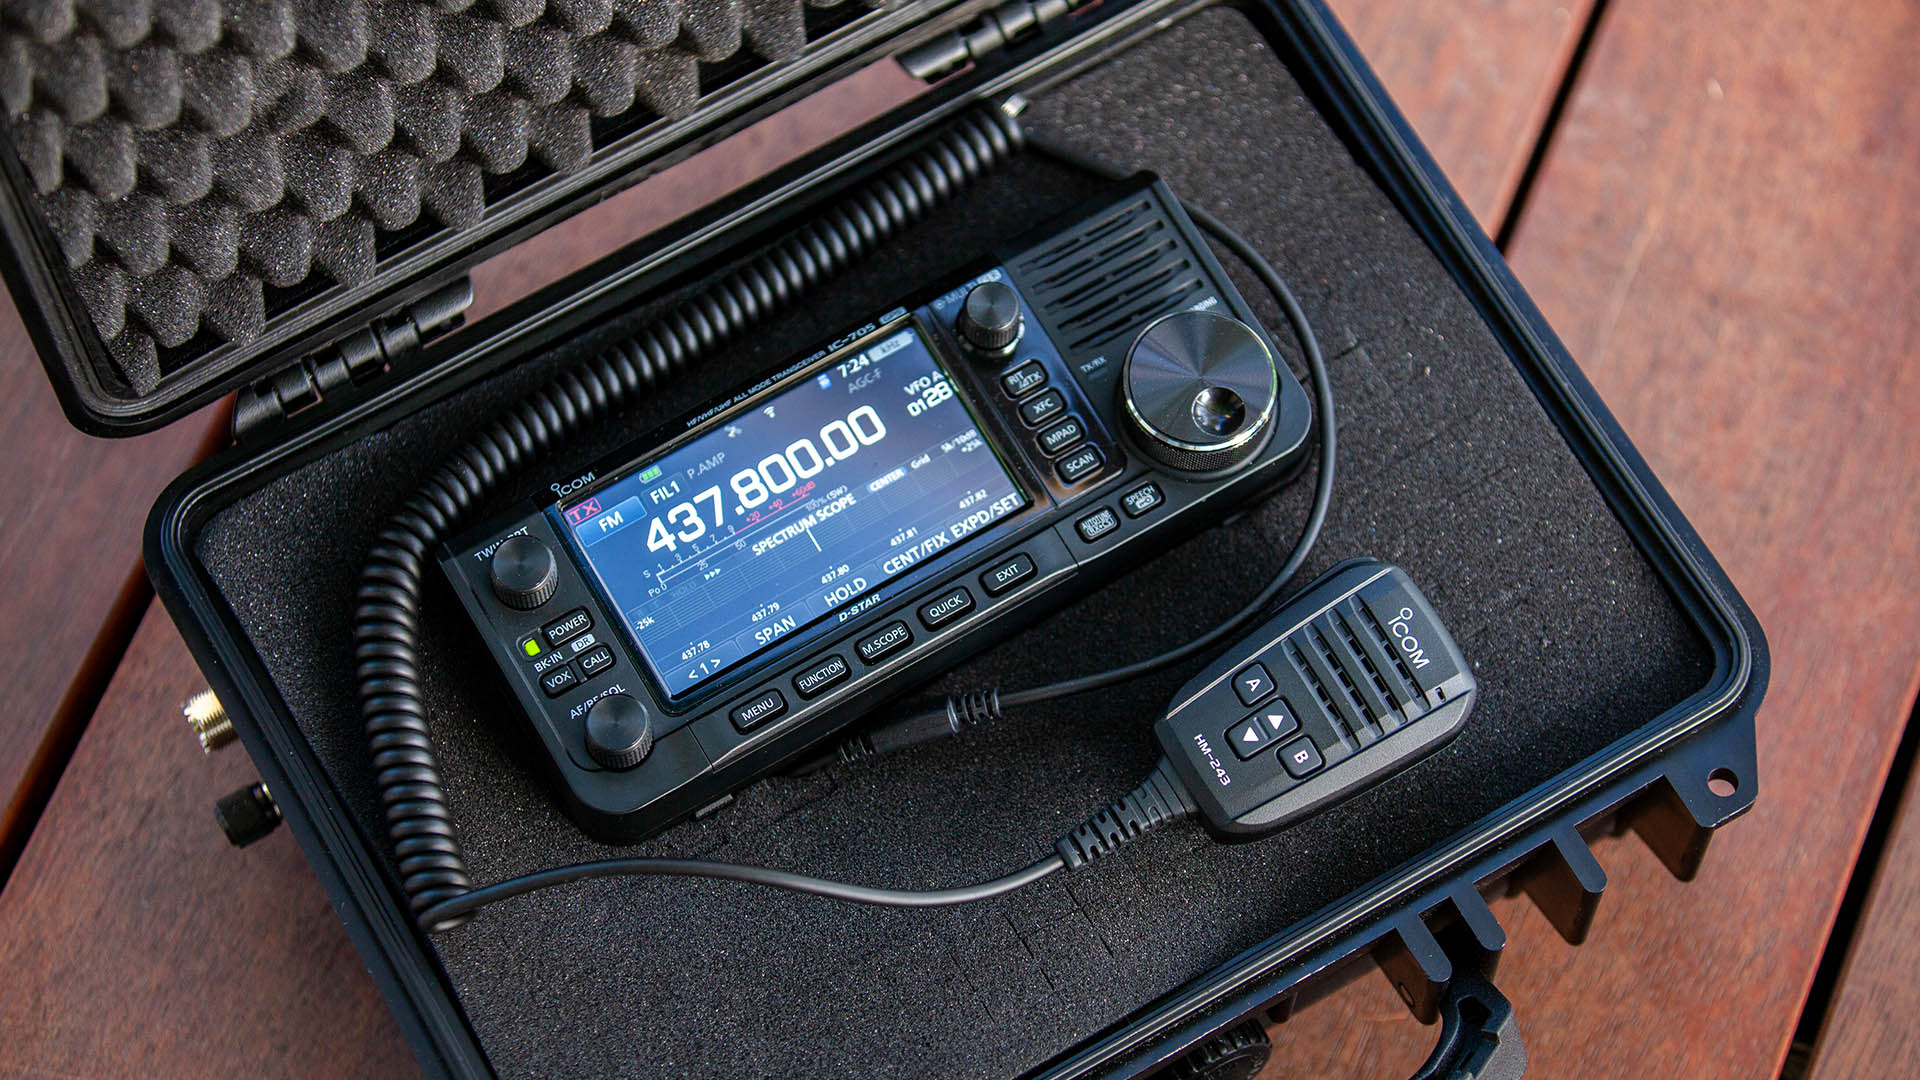 Icom IC-705 All Mode Transceiver Pelican case style storage option